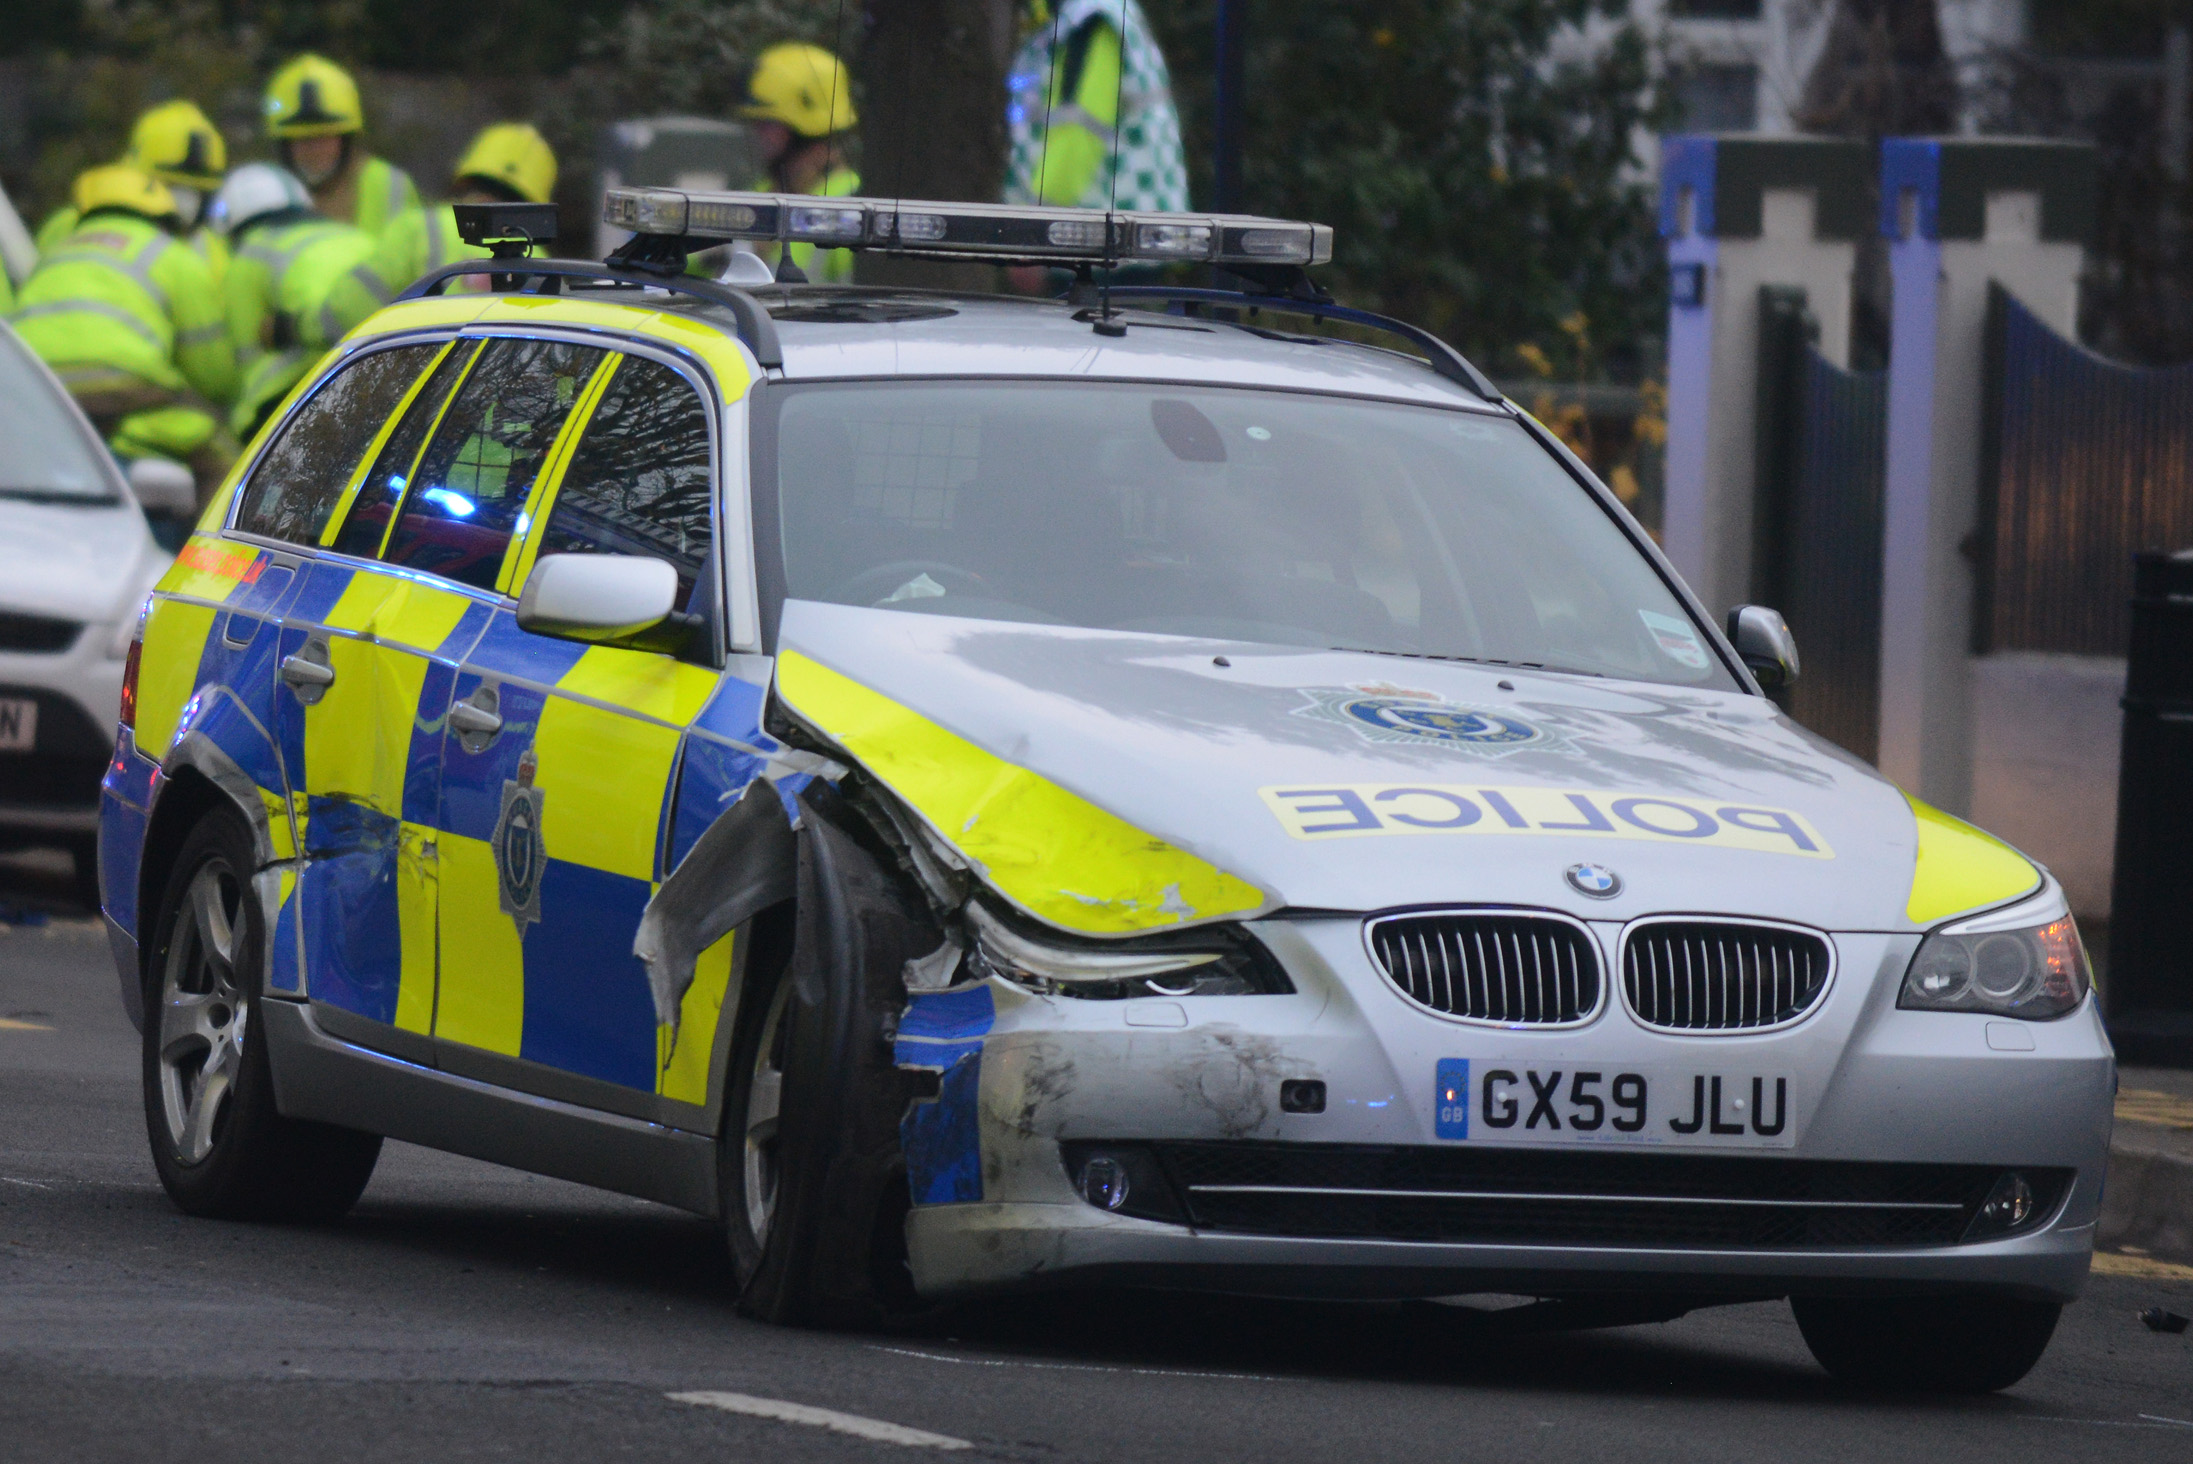 A Sussex Police car after a crash in Hove last year